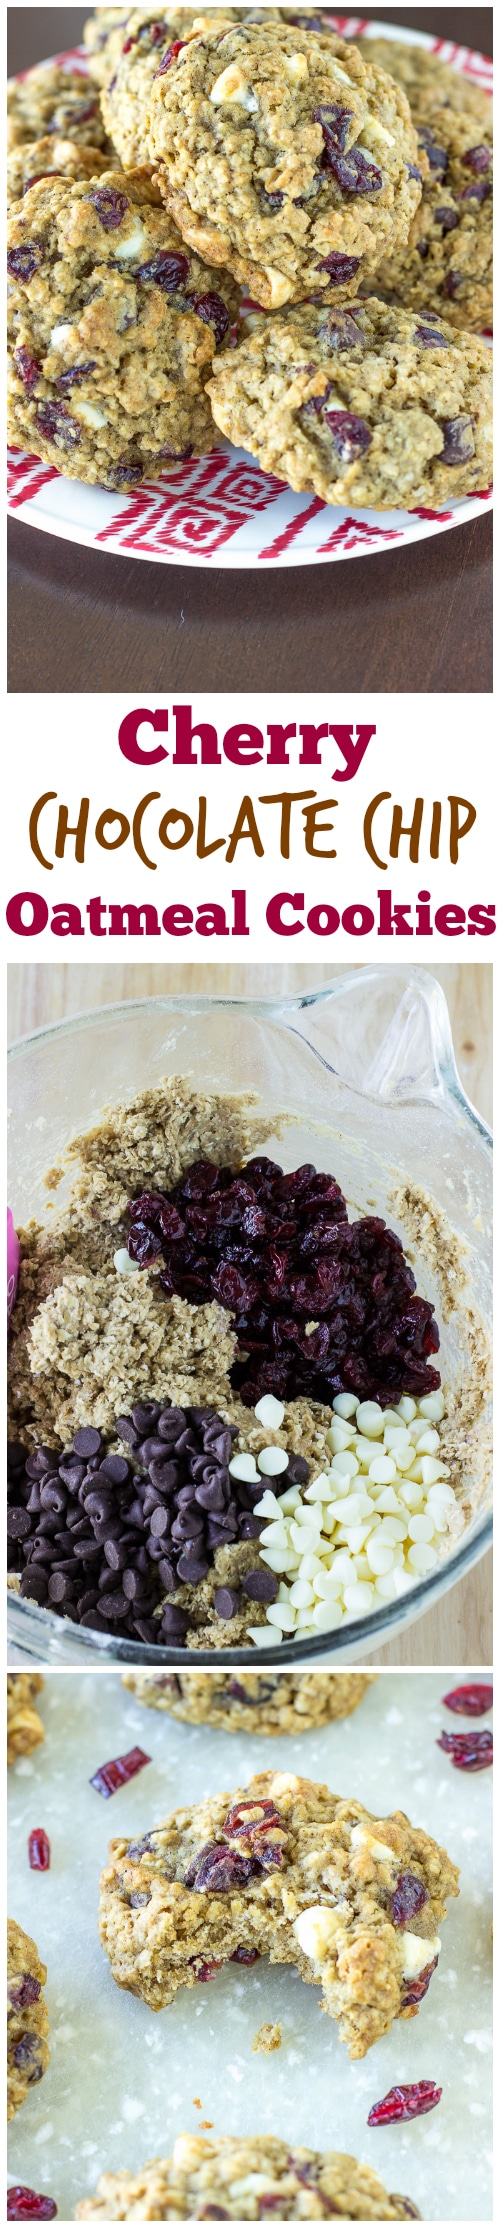 Cherry Chocolate Chip Oatmeal Cookies - Deliciously Sprinkled